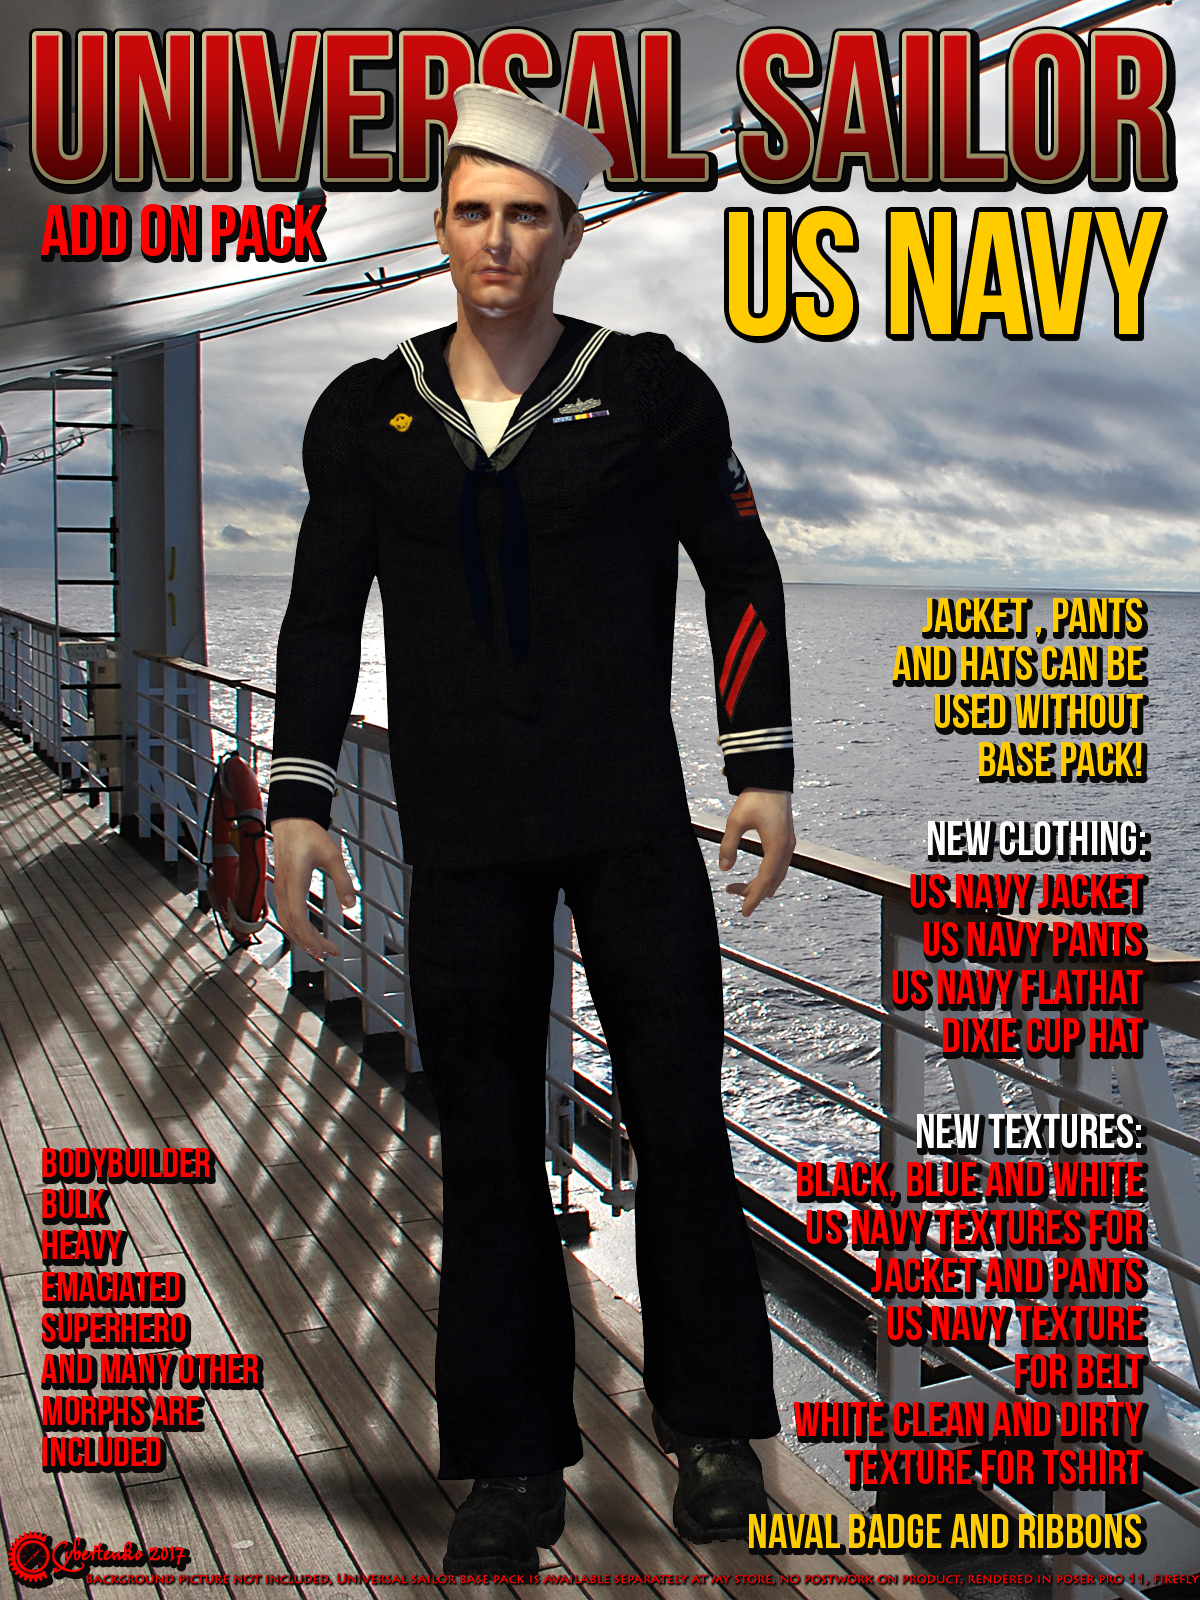 US Navy for Universal Sailor